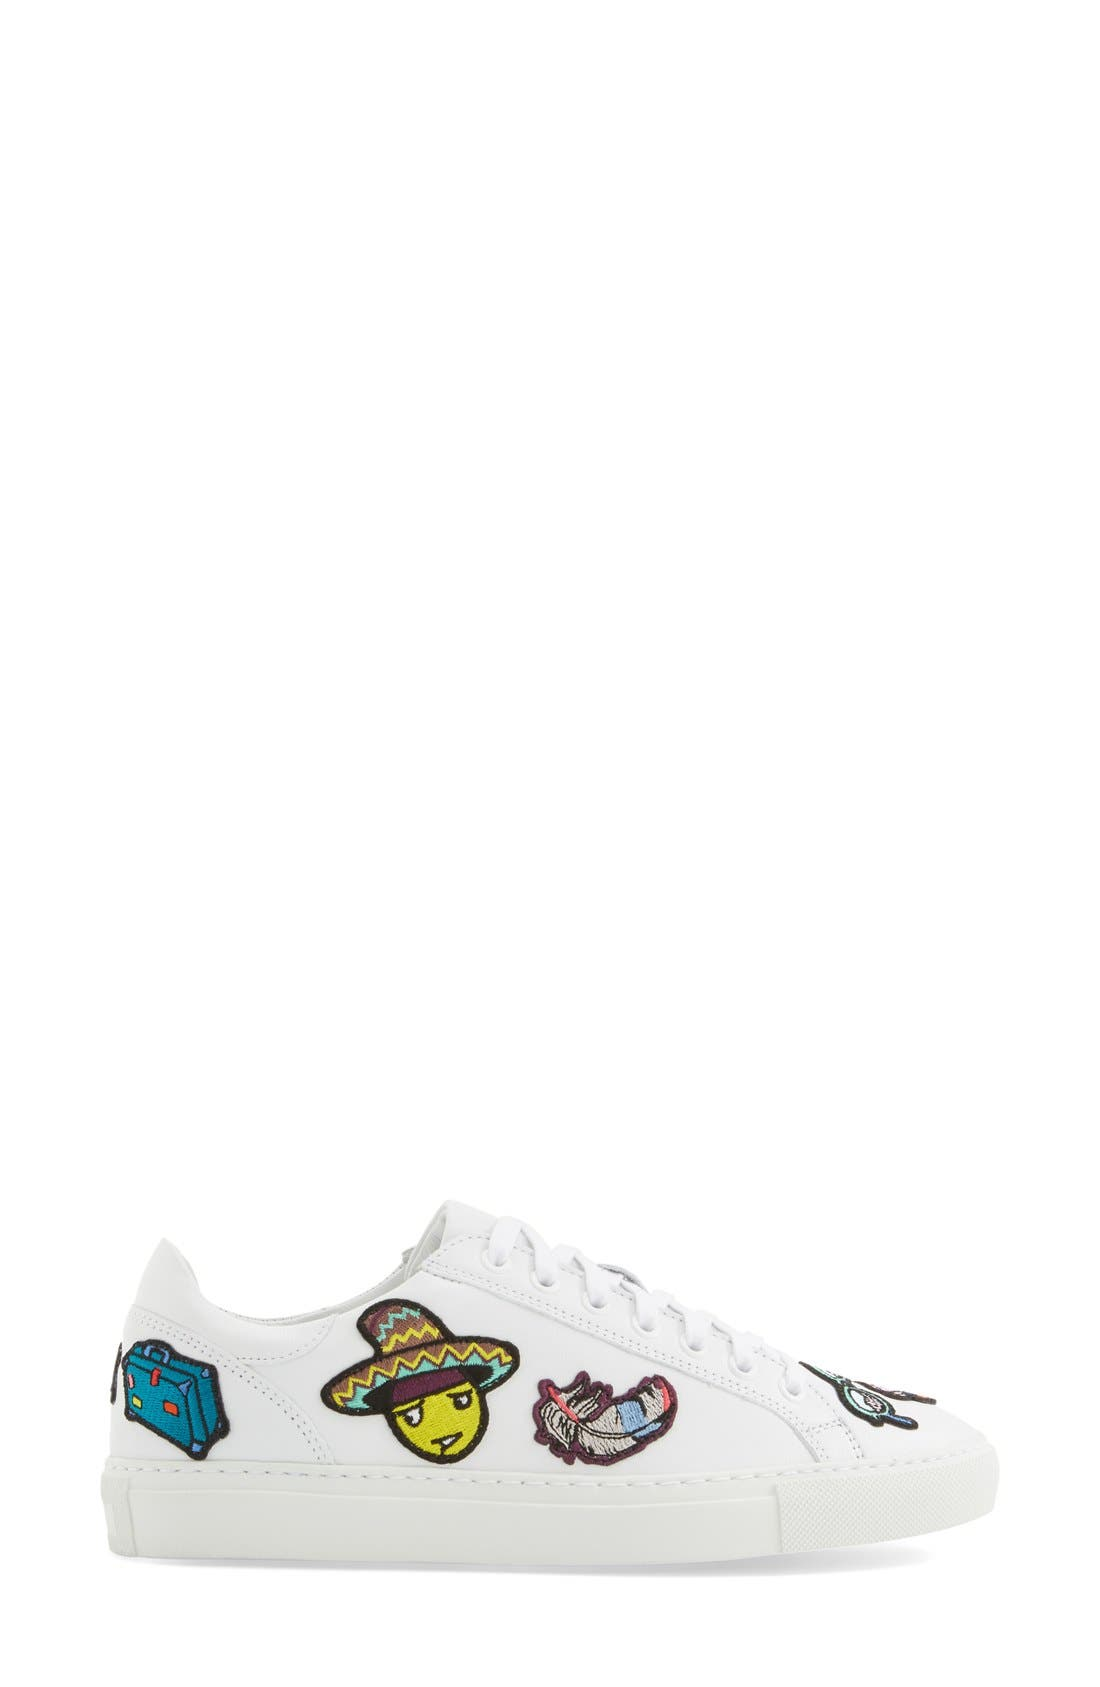 MIRA MIKATI,                             'Patches' Low Top Sneaker,                             Alternate thumbnail 4, color,                             111